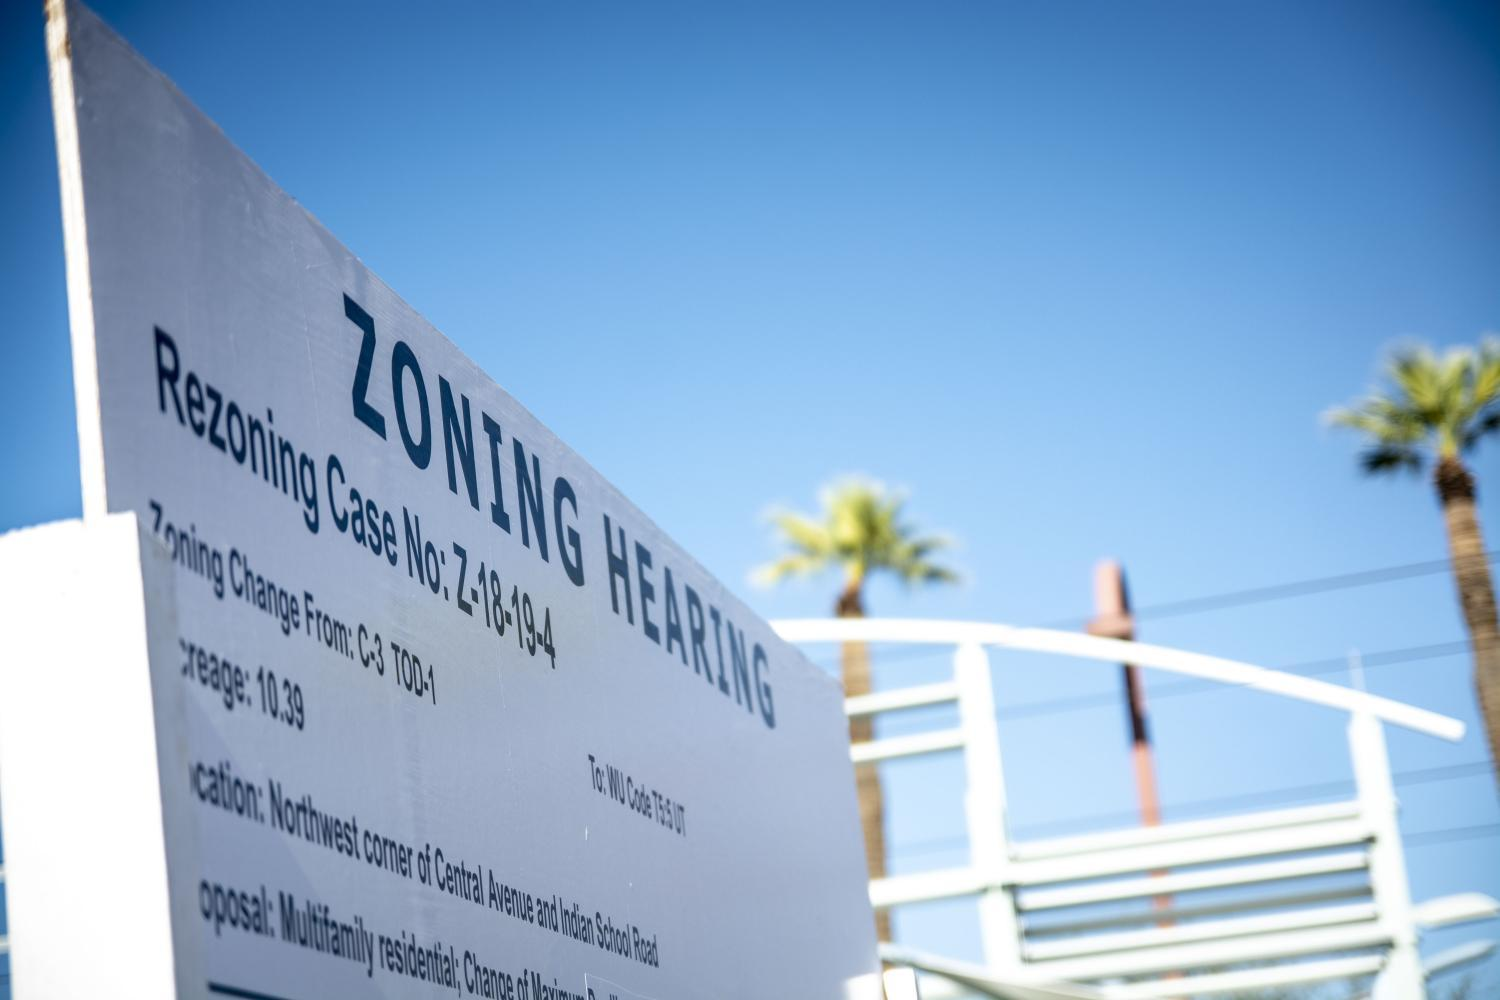 A sign publicizes an upcoming zoning hearing in Phoenix. Affordable housing advocates in cities nationwide are increasingly questioning zoning laws as a factor in housing shortages.